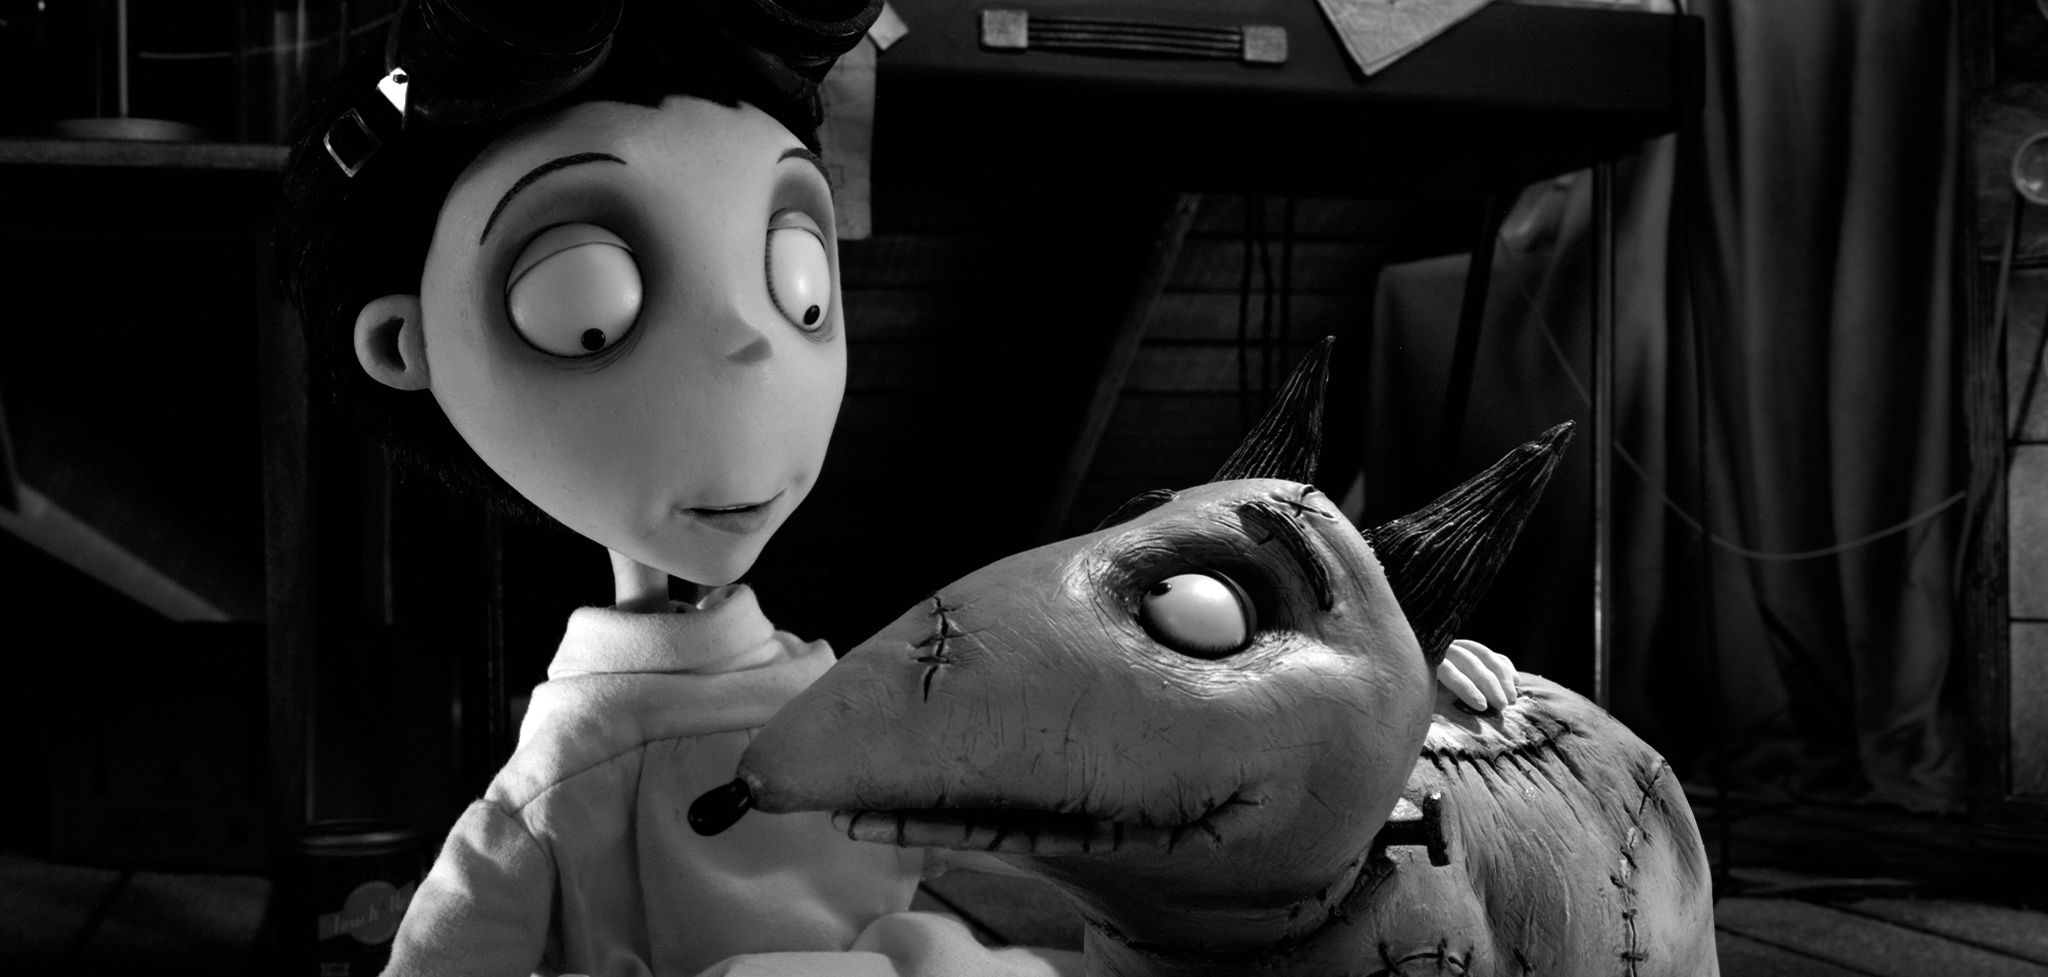 An image from Frankenweenie